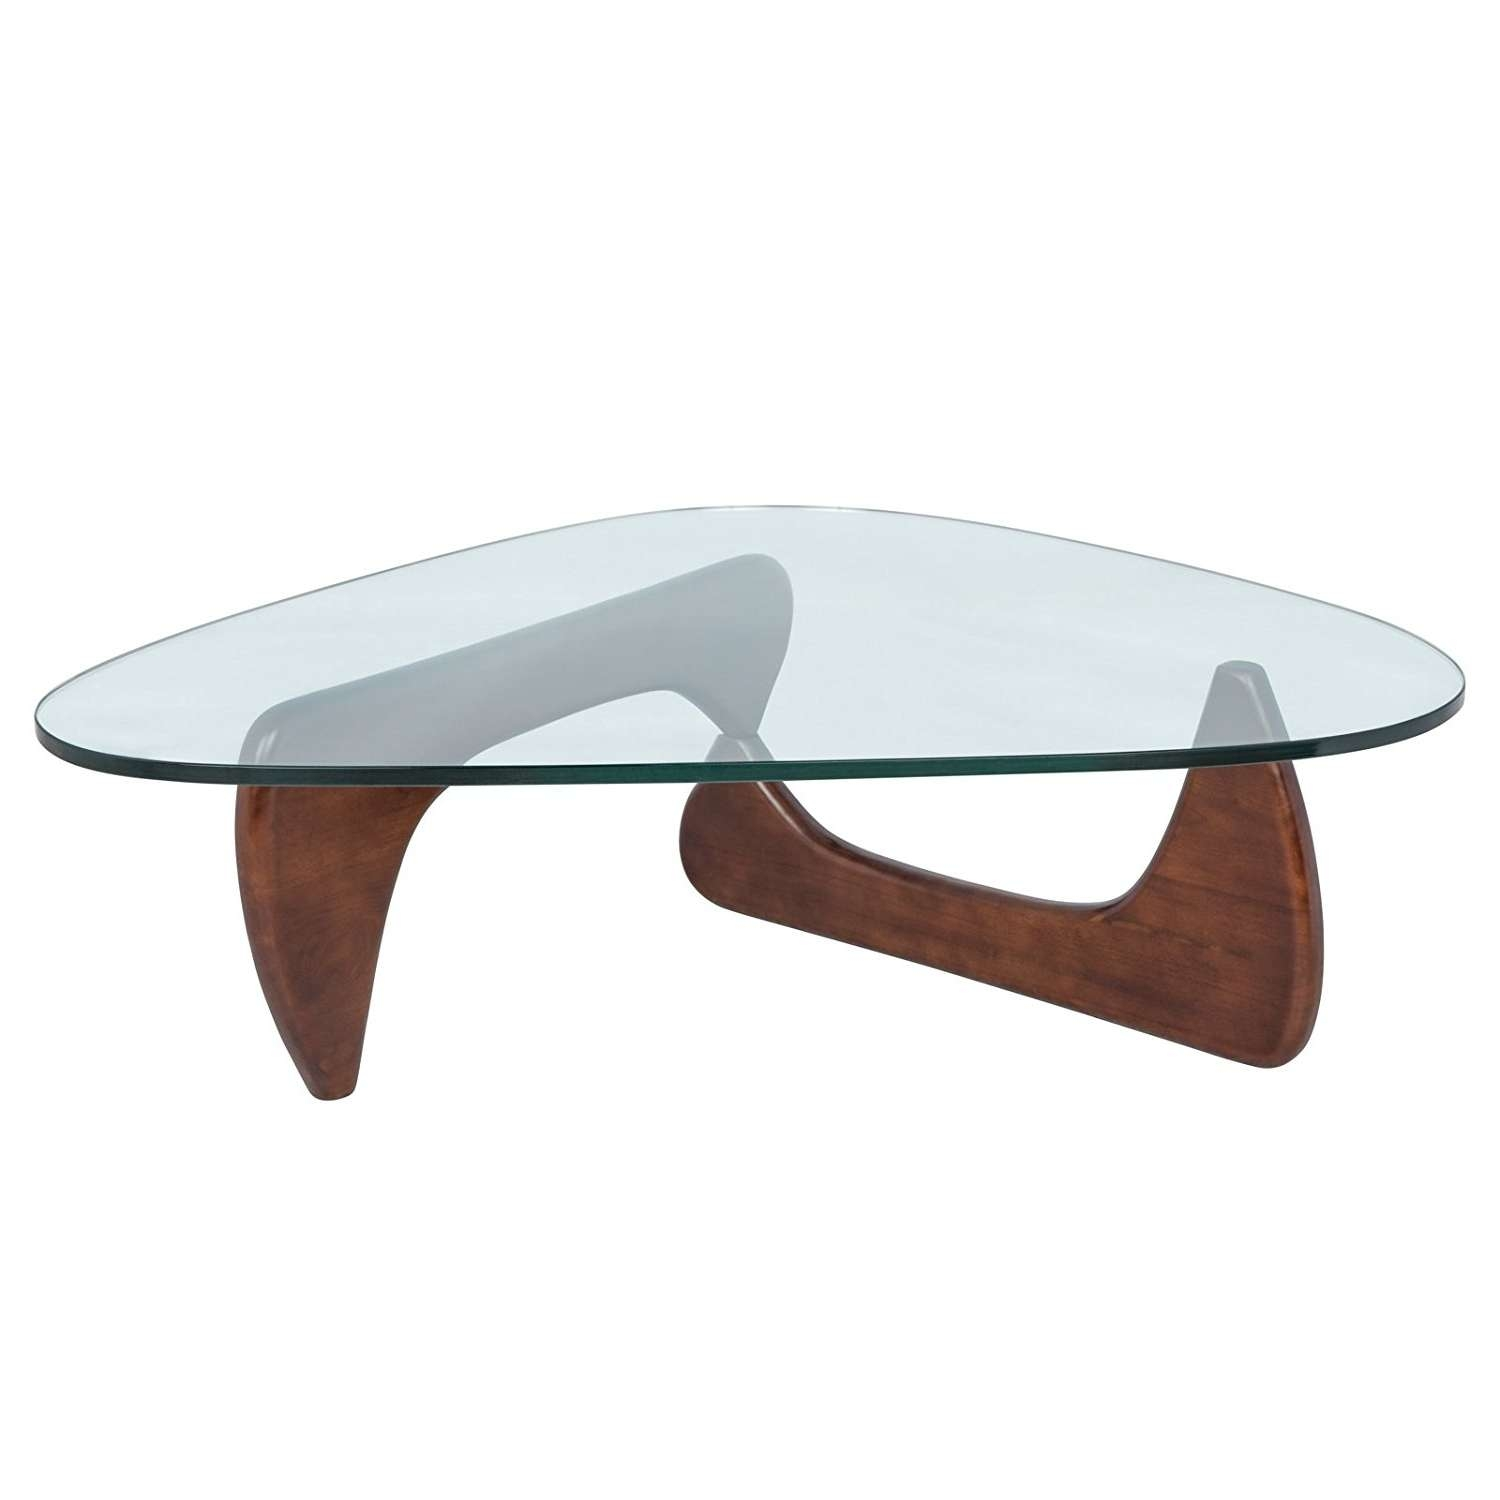 Popular Glass And Wood Coffee Tables Regarding Coffee Table : Amazing Wood Coffee Table Large Square Coffee Table (View 14 of 20)